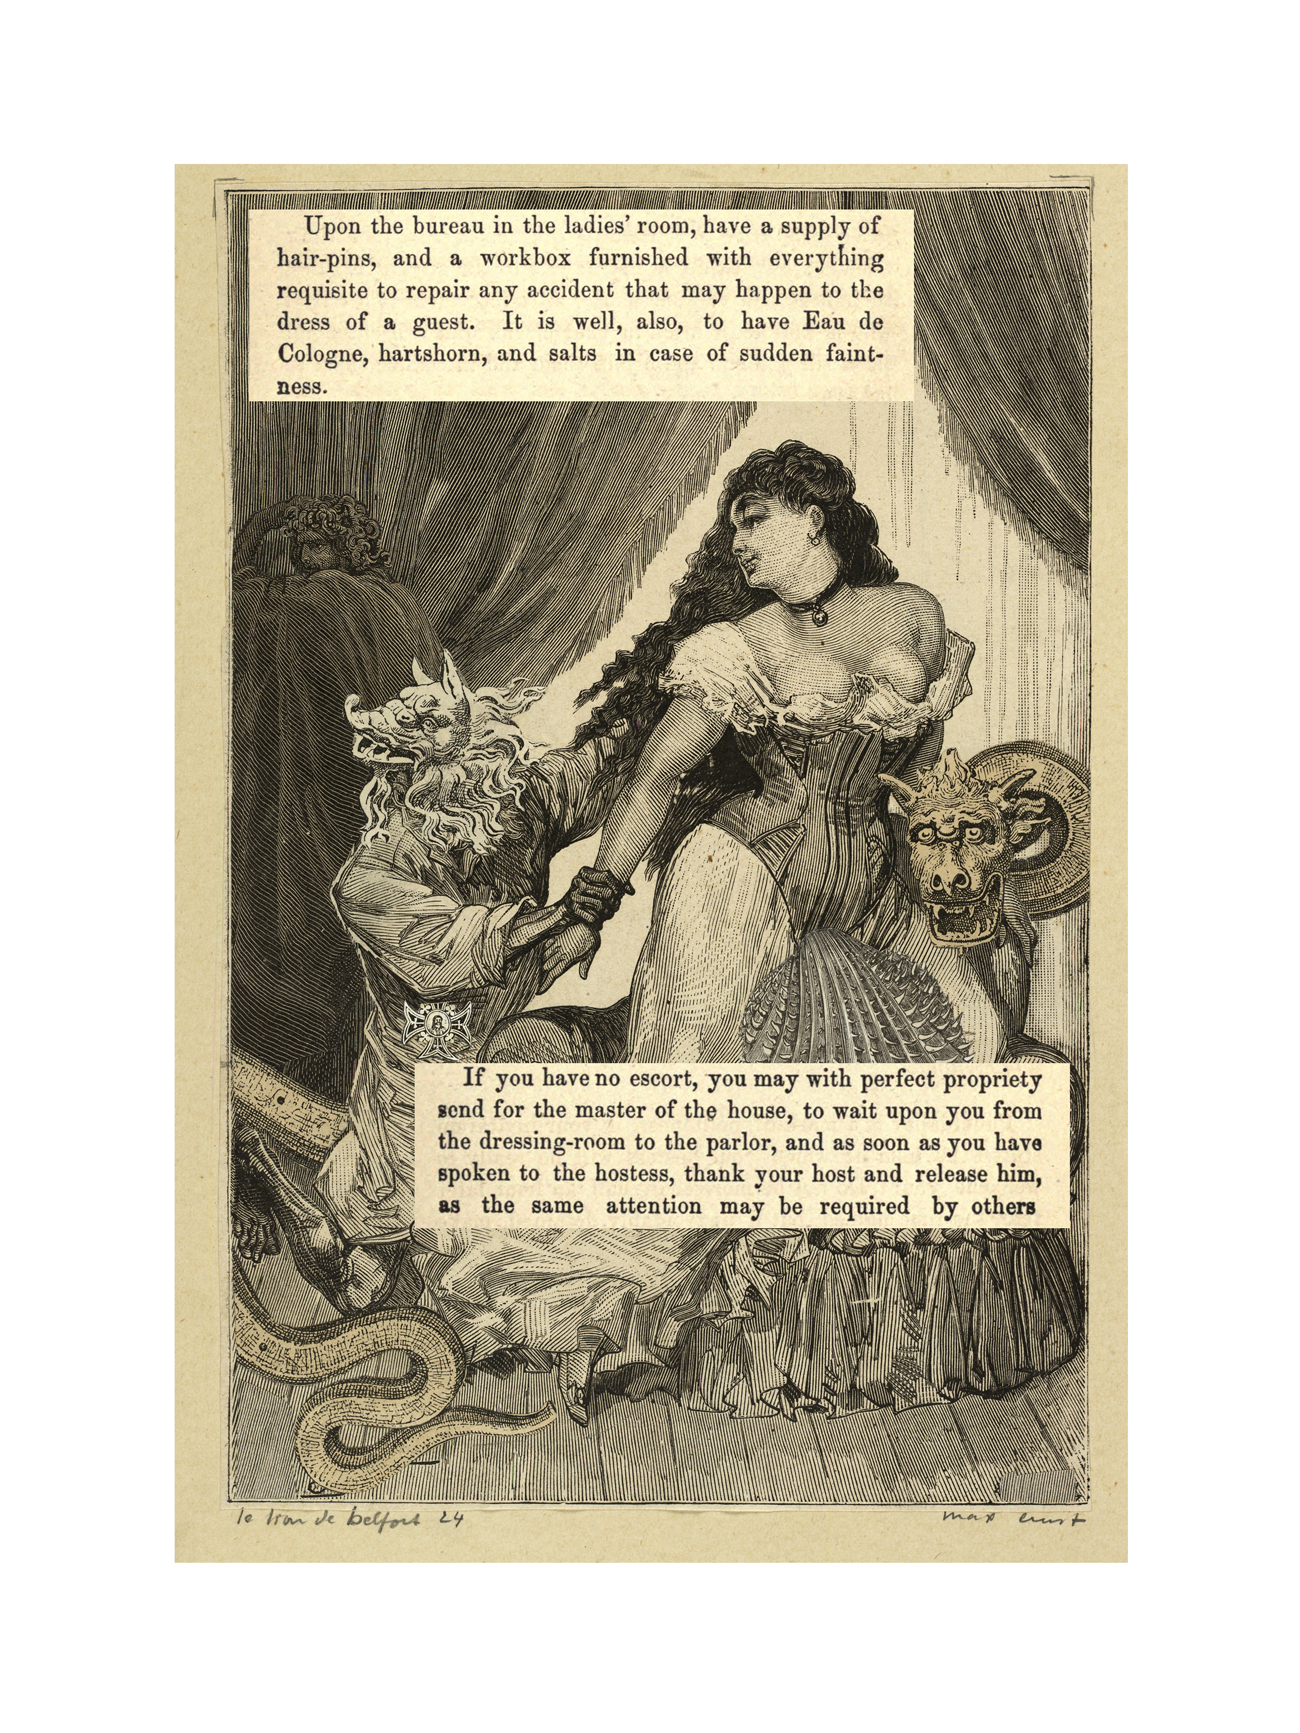 Max Ernst collage with text from manual of good manners for ladies